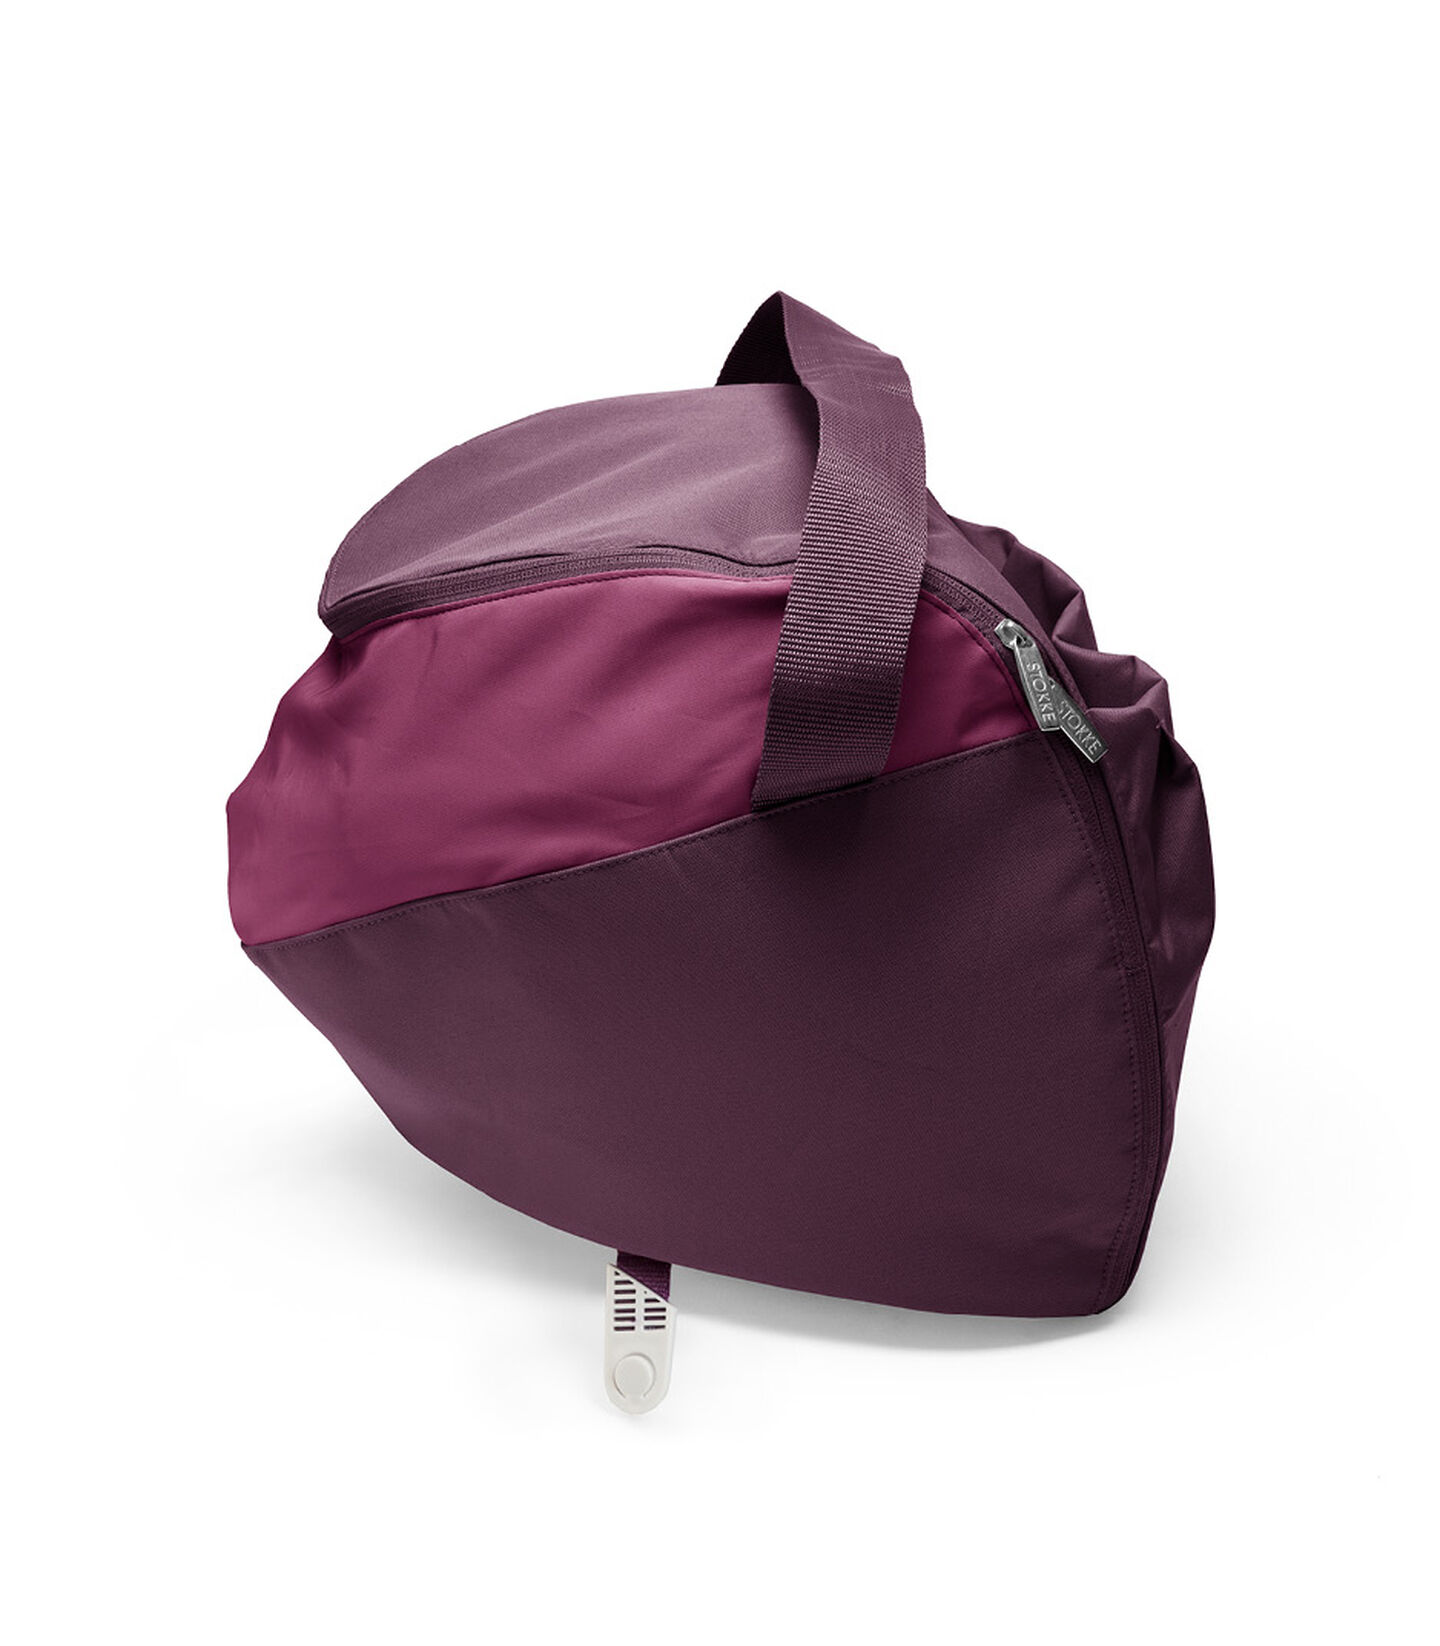 Stokke® Xplory® Shopping Bag Prune, Violet, mainview view 2